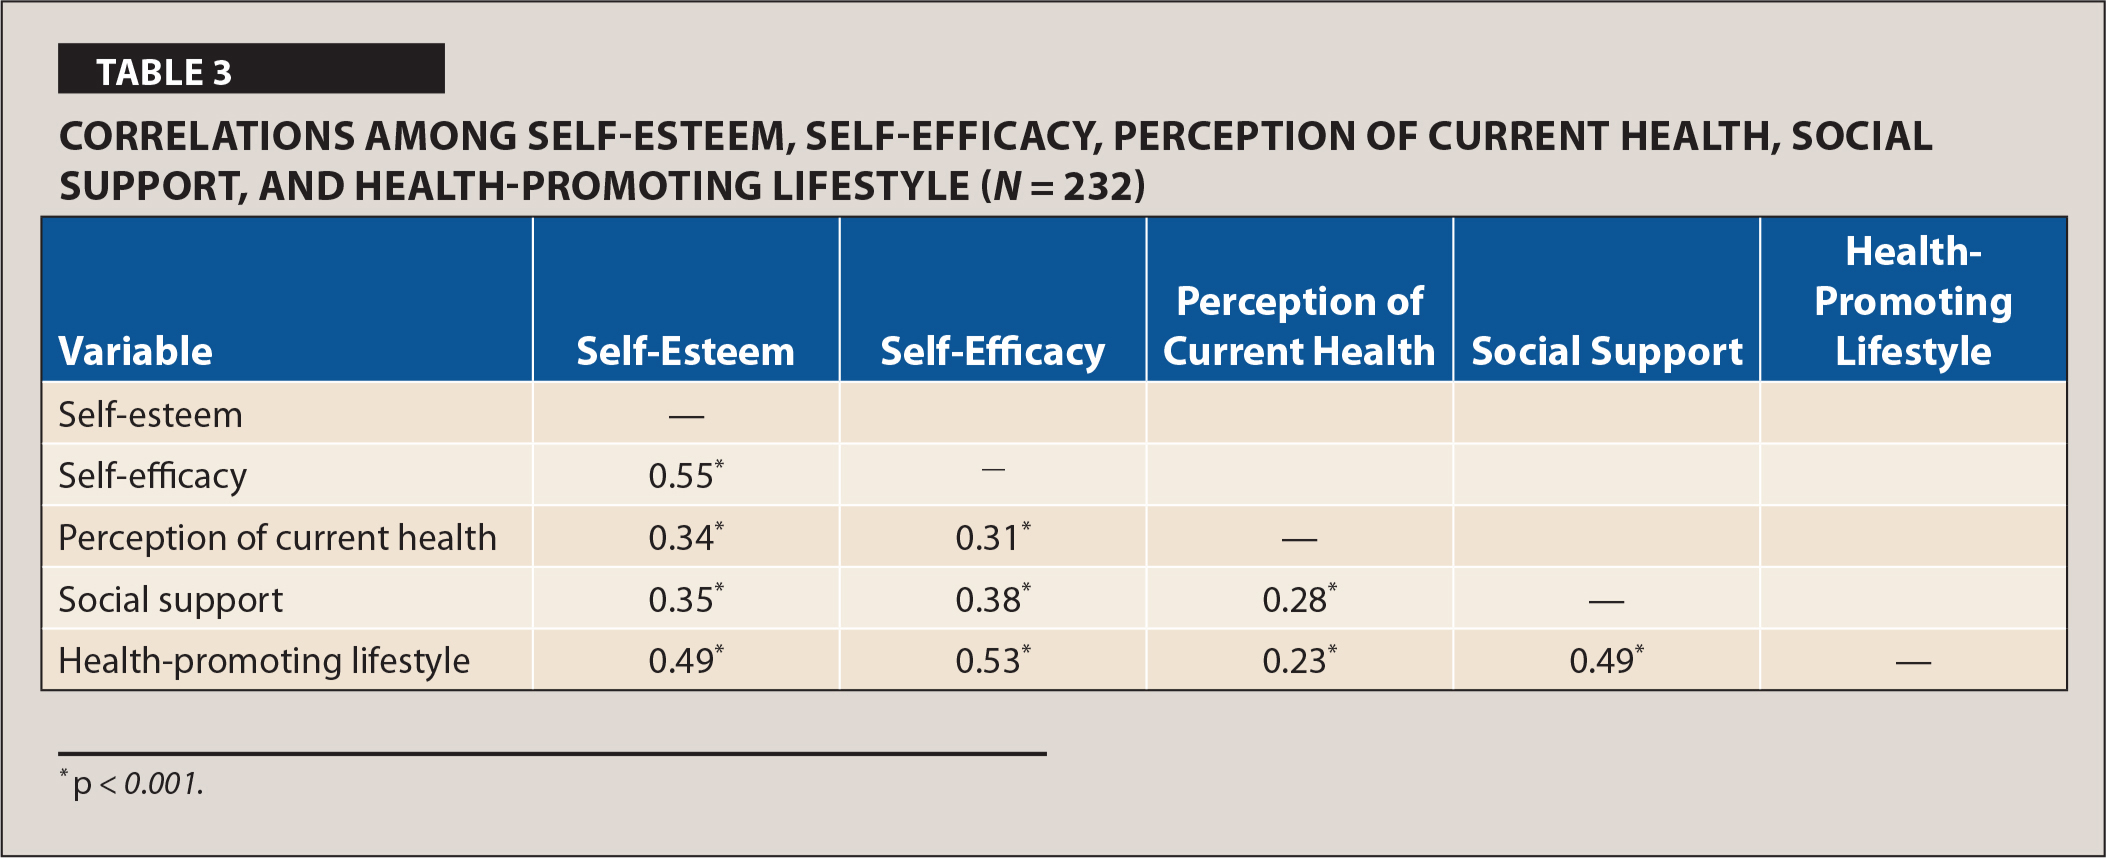 Correlations among Self-Esteem, Self-Efficacy, Perception of Current Health, Social Support, and Health-Promoting Lifestyle (N = 232)